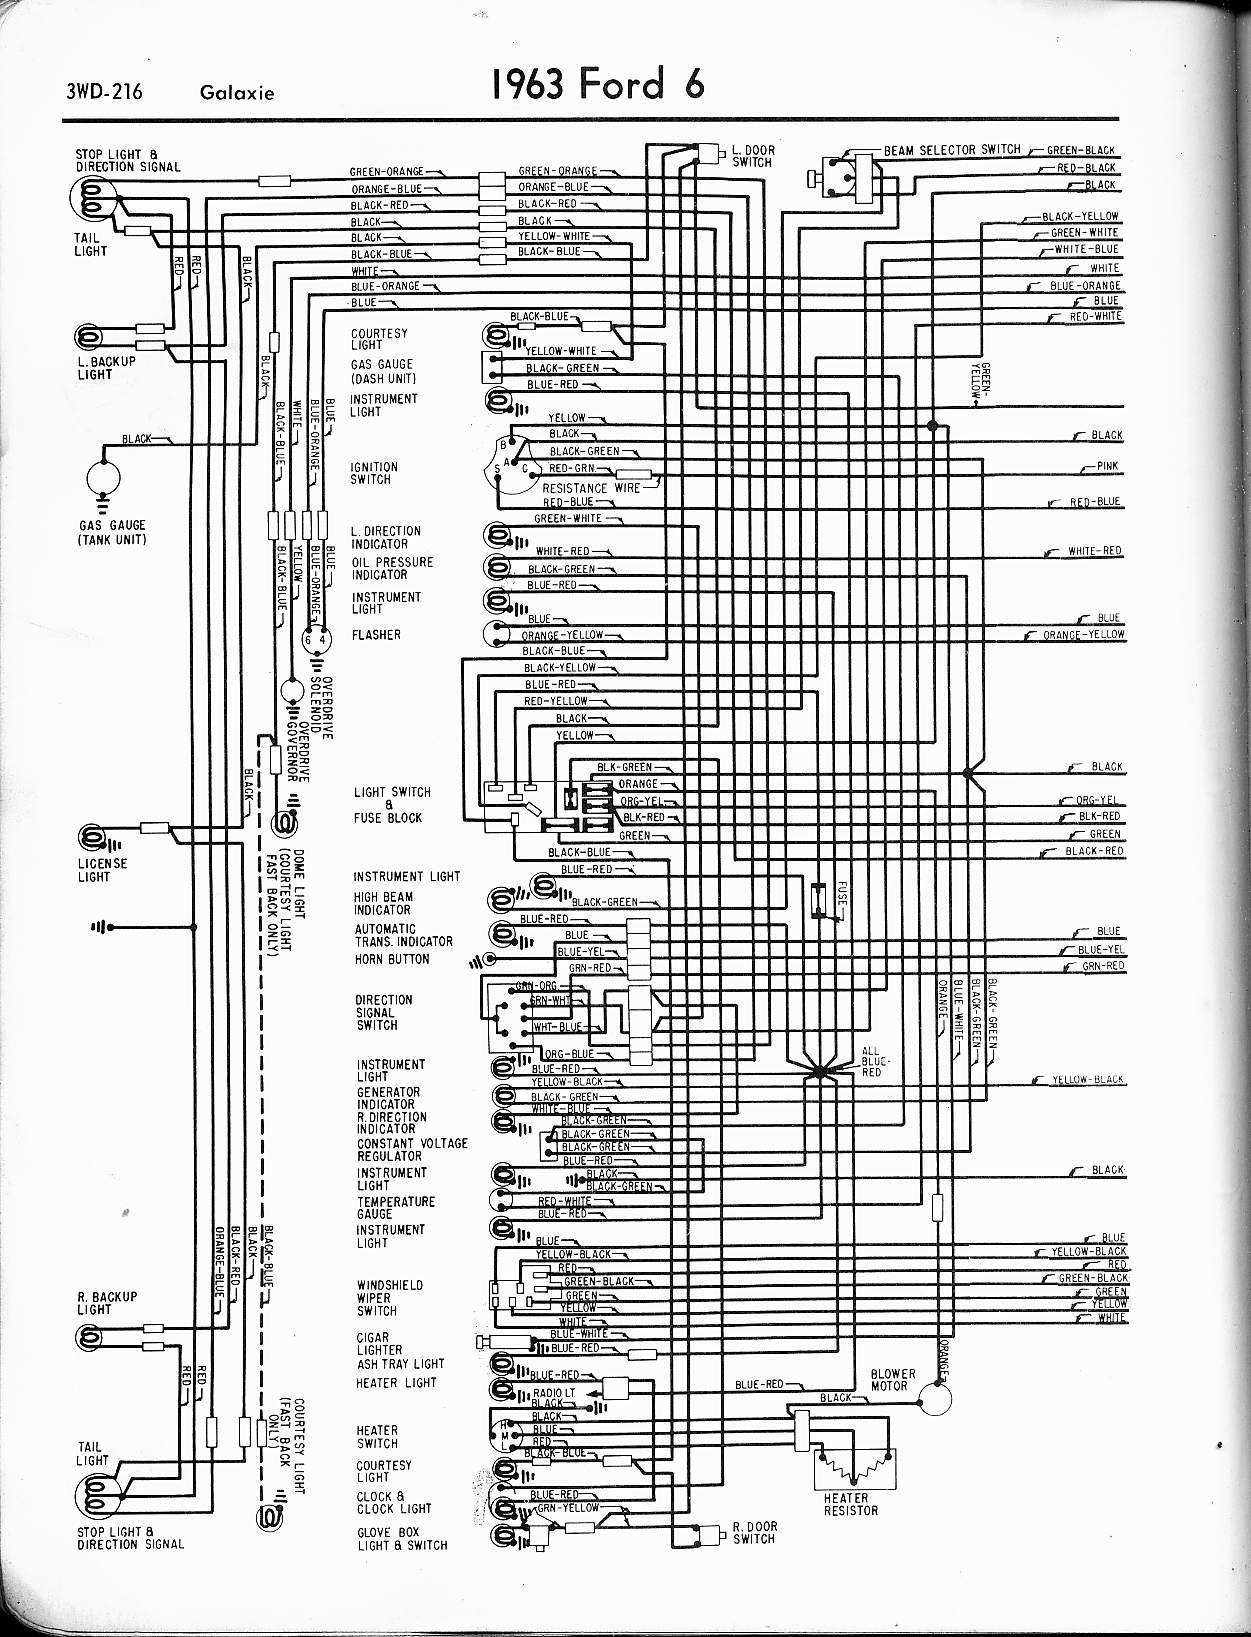 1964 ford thunderbird wiring diagram 57 65 ford wiring diagrams 1993 ford thunderbird wiring diagram